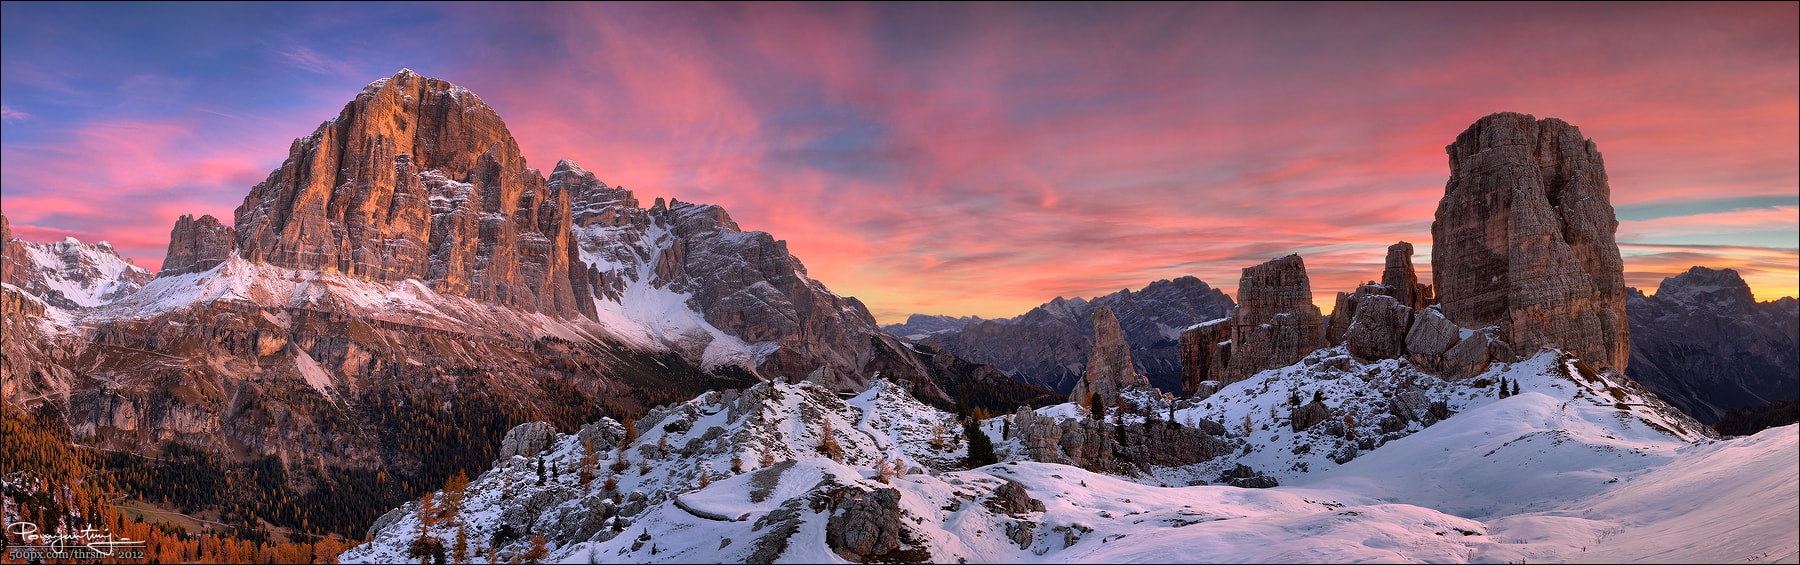 Photograph Cinque Torri (panorama) by Andrew Thrasher on 500px